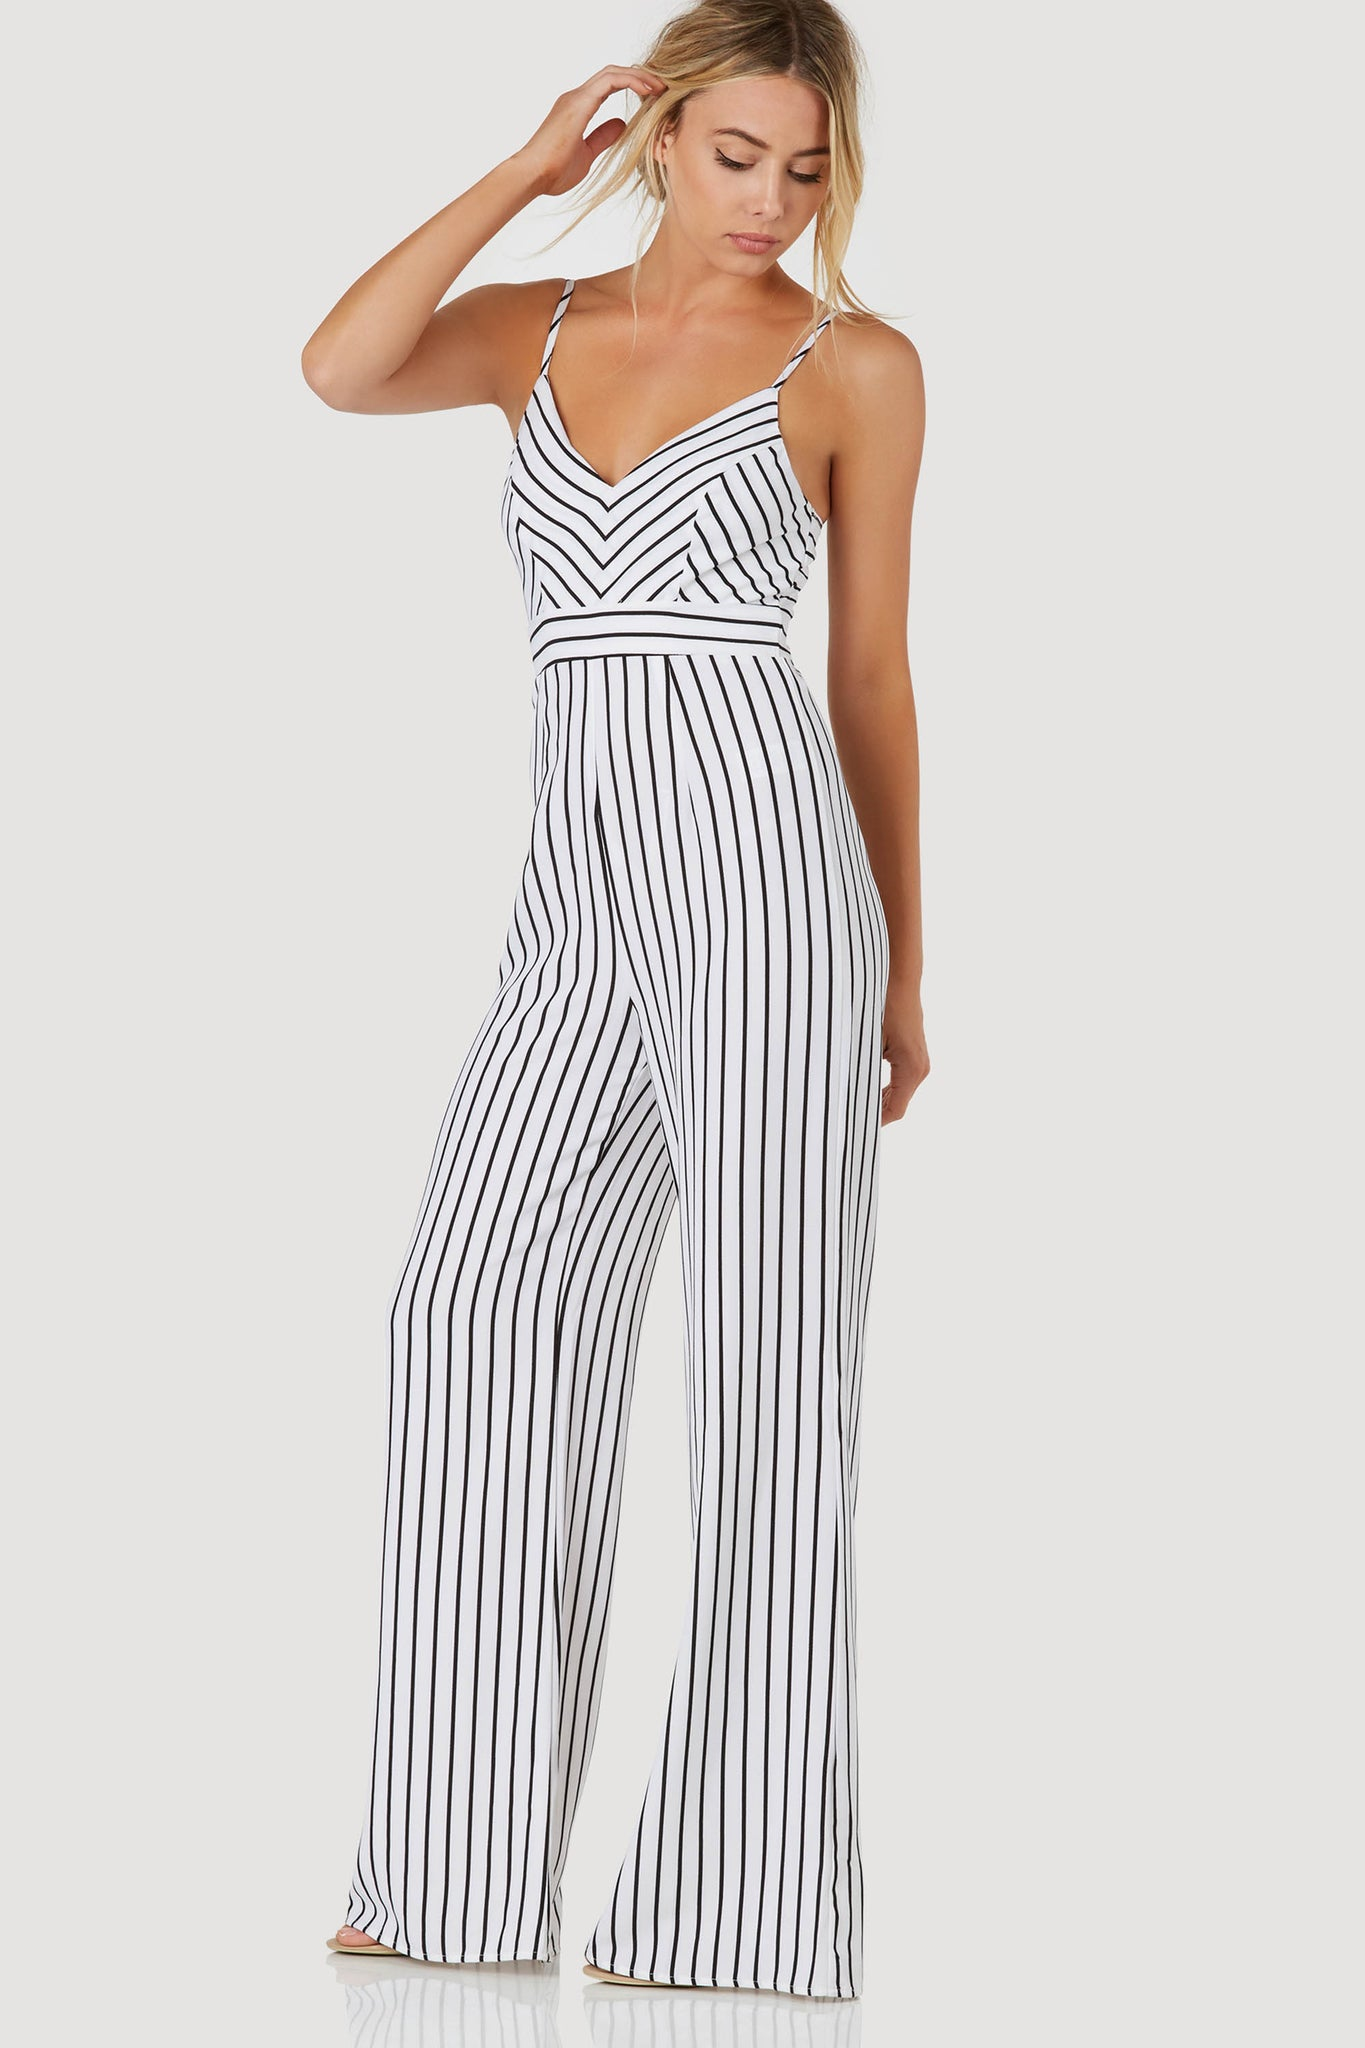 Chic sleeveless jumpsuit with classic V-neckline and stripe patterns throughout. Relaxed fit with back zip closure.